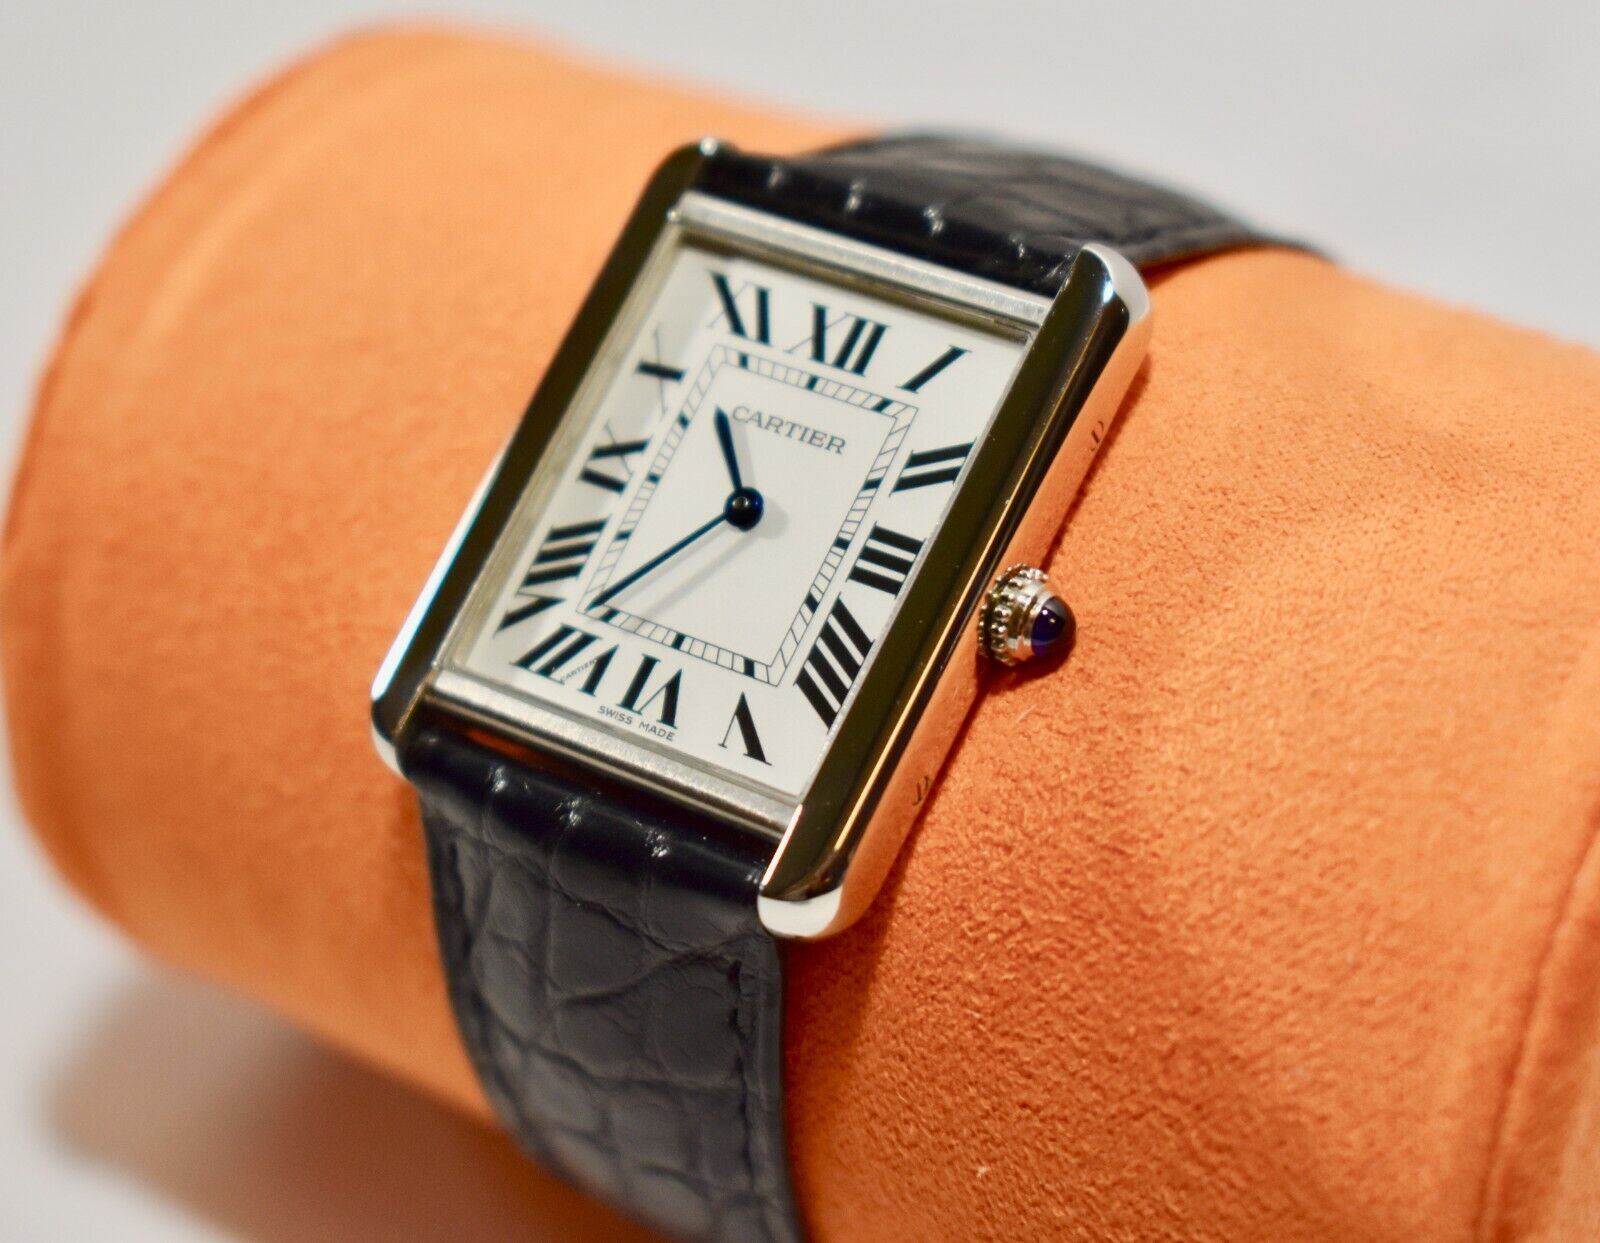 Cartier Tank Solo Quartz Swiss Watch for Men – Stainless Steel - watch picture 1